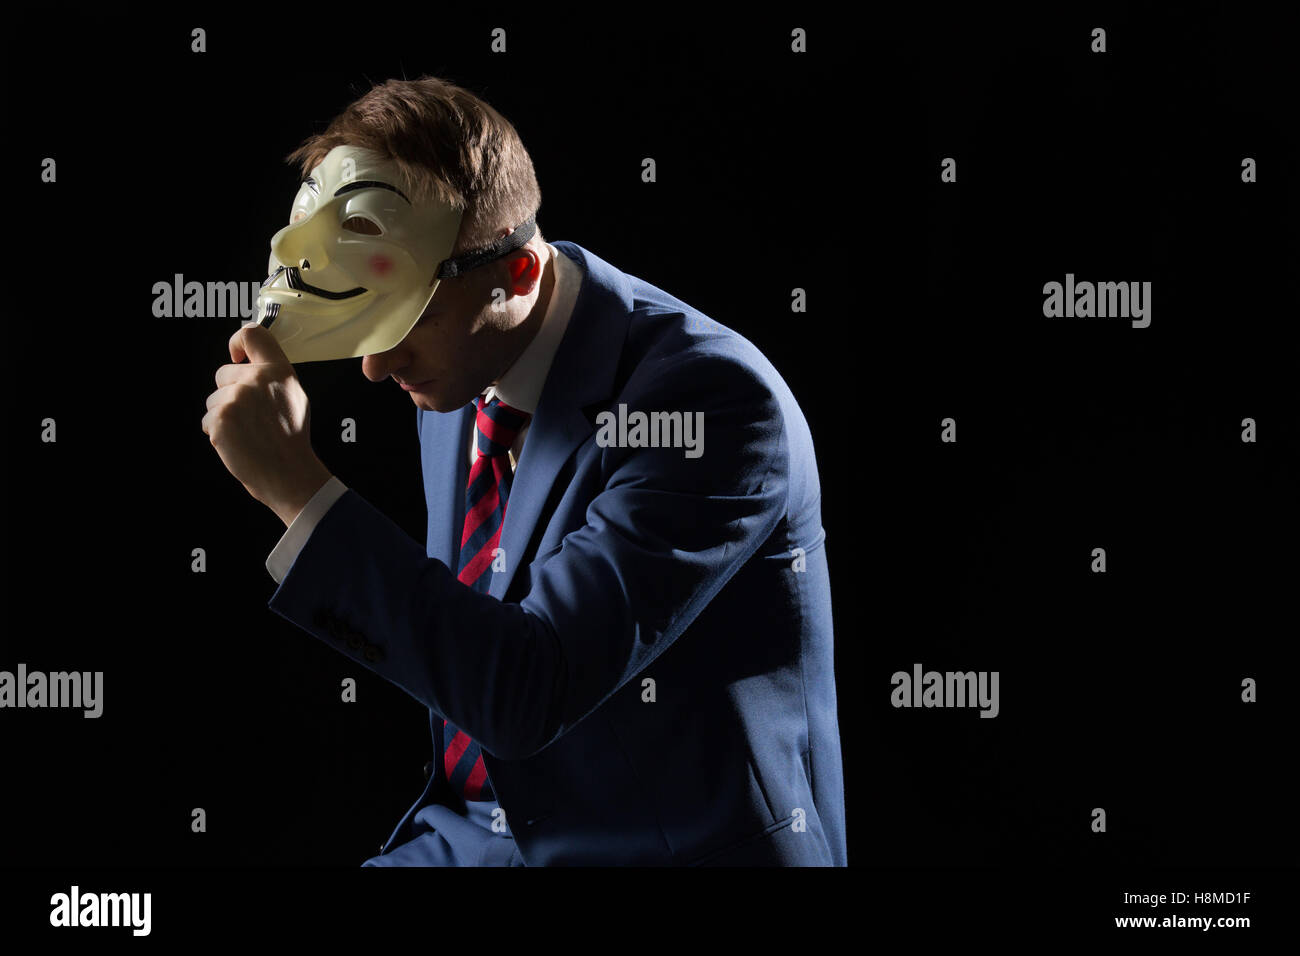 Business man under the mask disguise being  Anonymous and implying that he is a hacker or anarchist - Stock Image